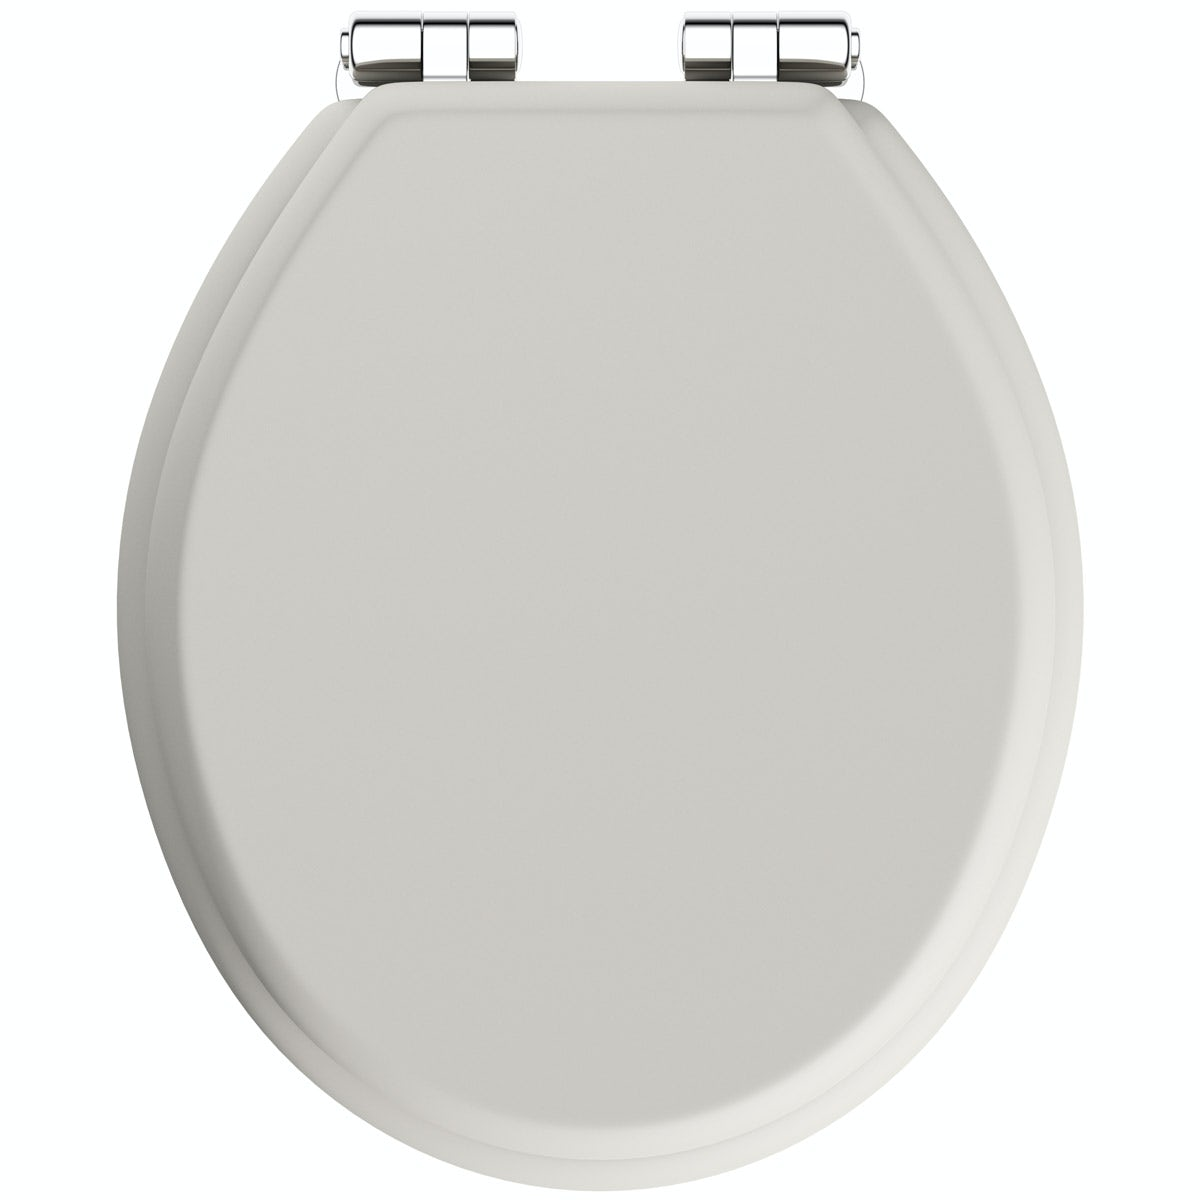 The Bath Co. traditional Dulwich ivory engineered wood toilet seat with top fixing soft close hinge